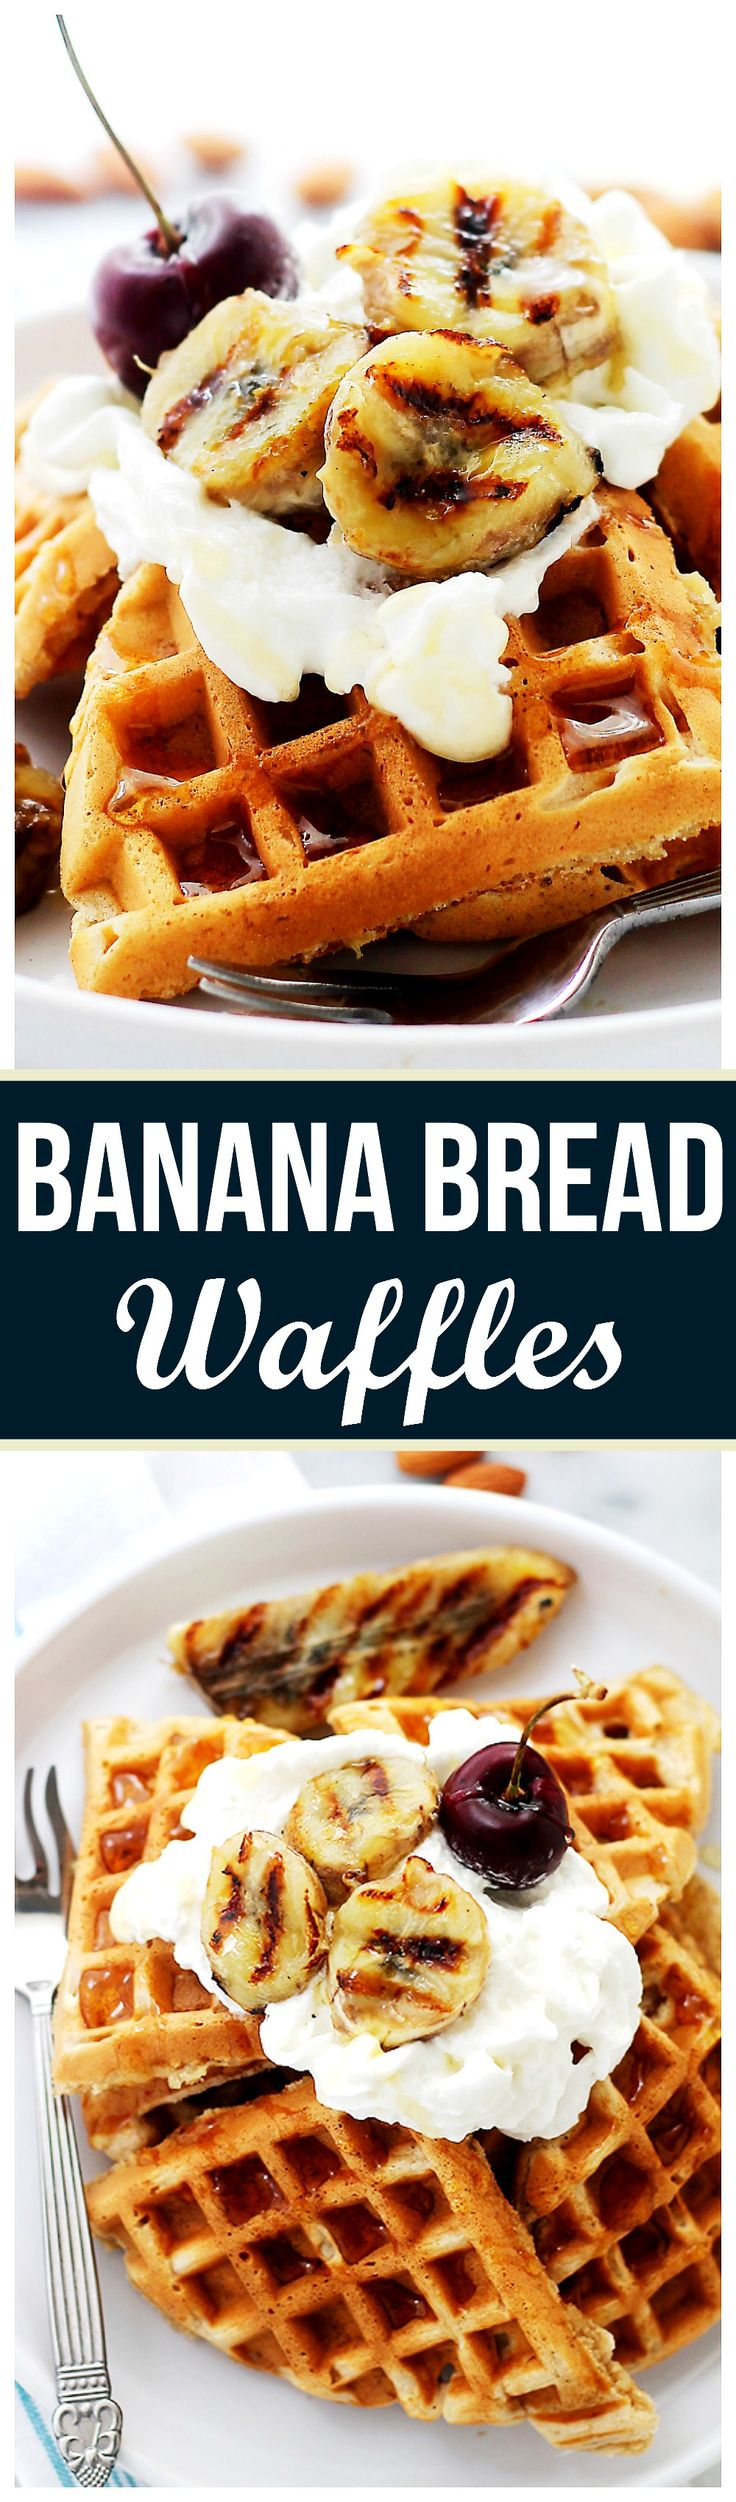 Banana Bread Waffles | diethood